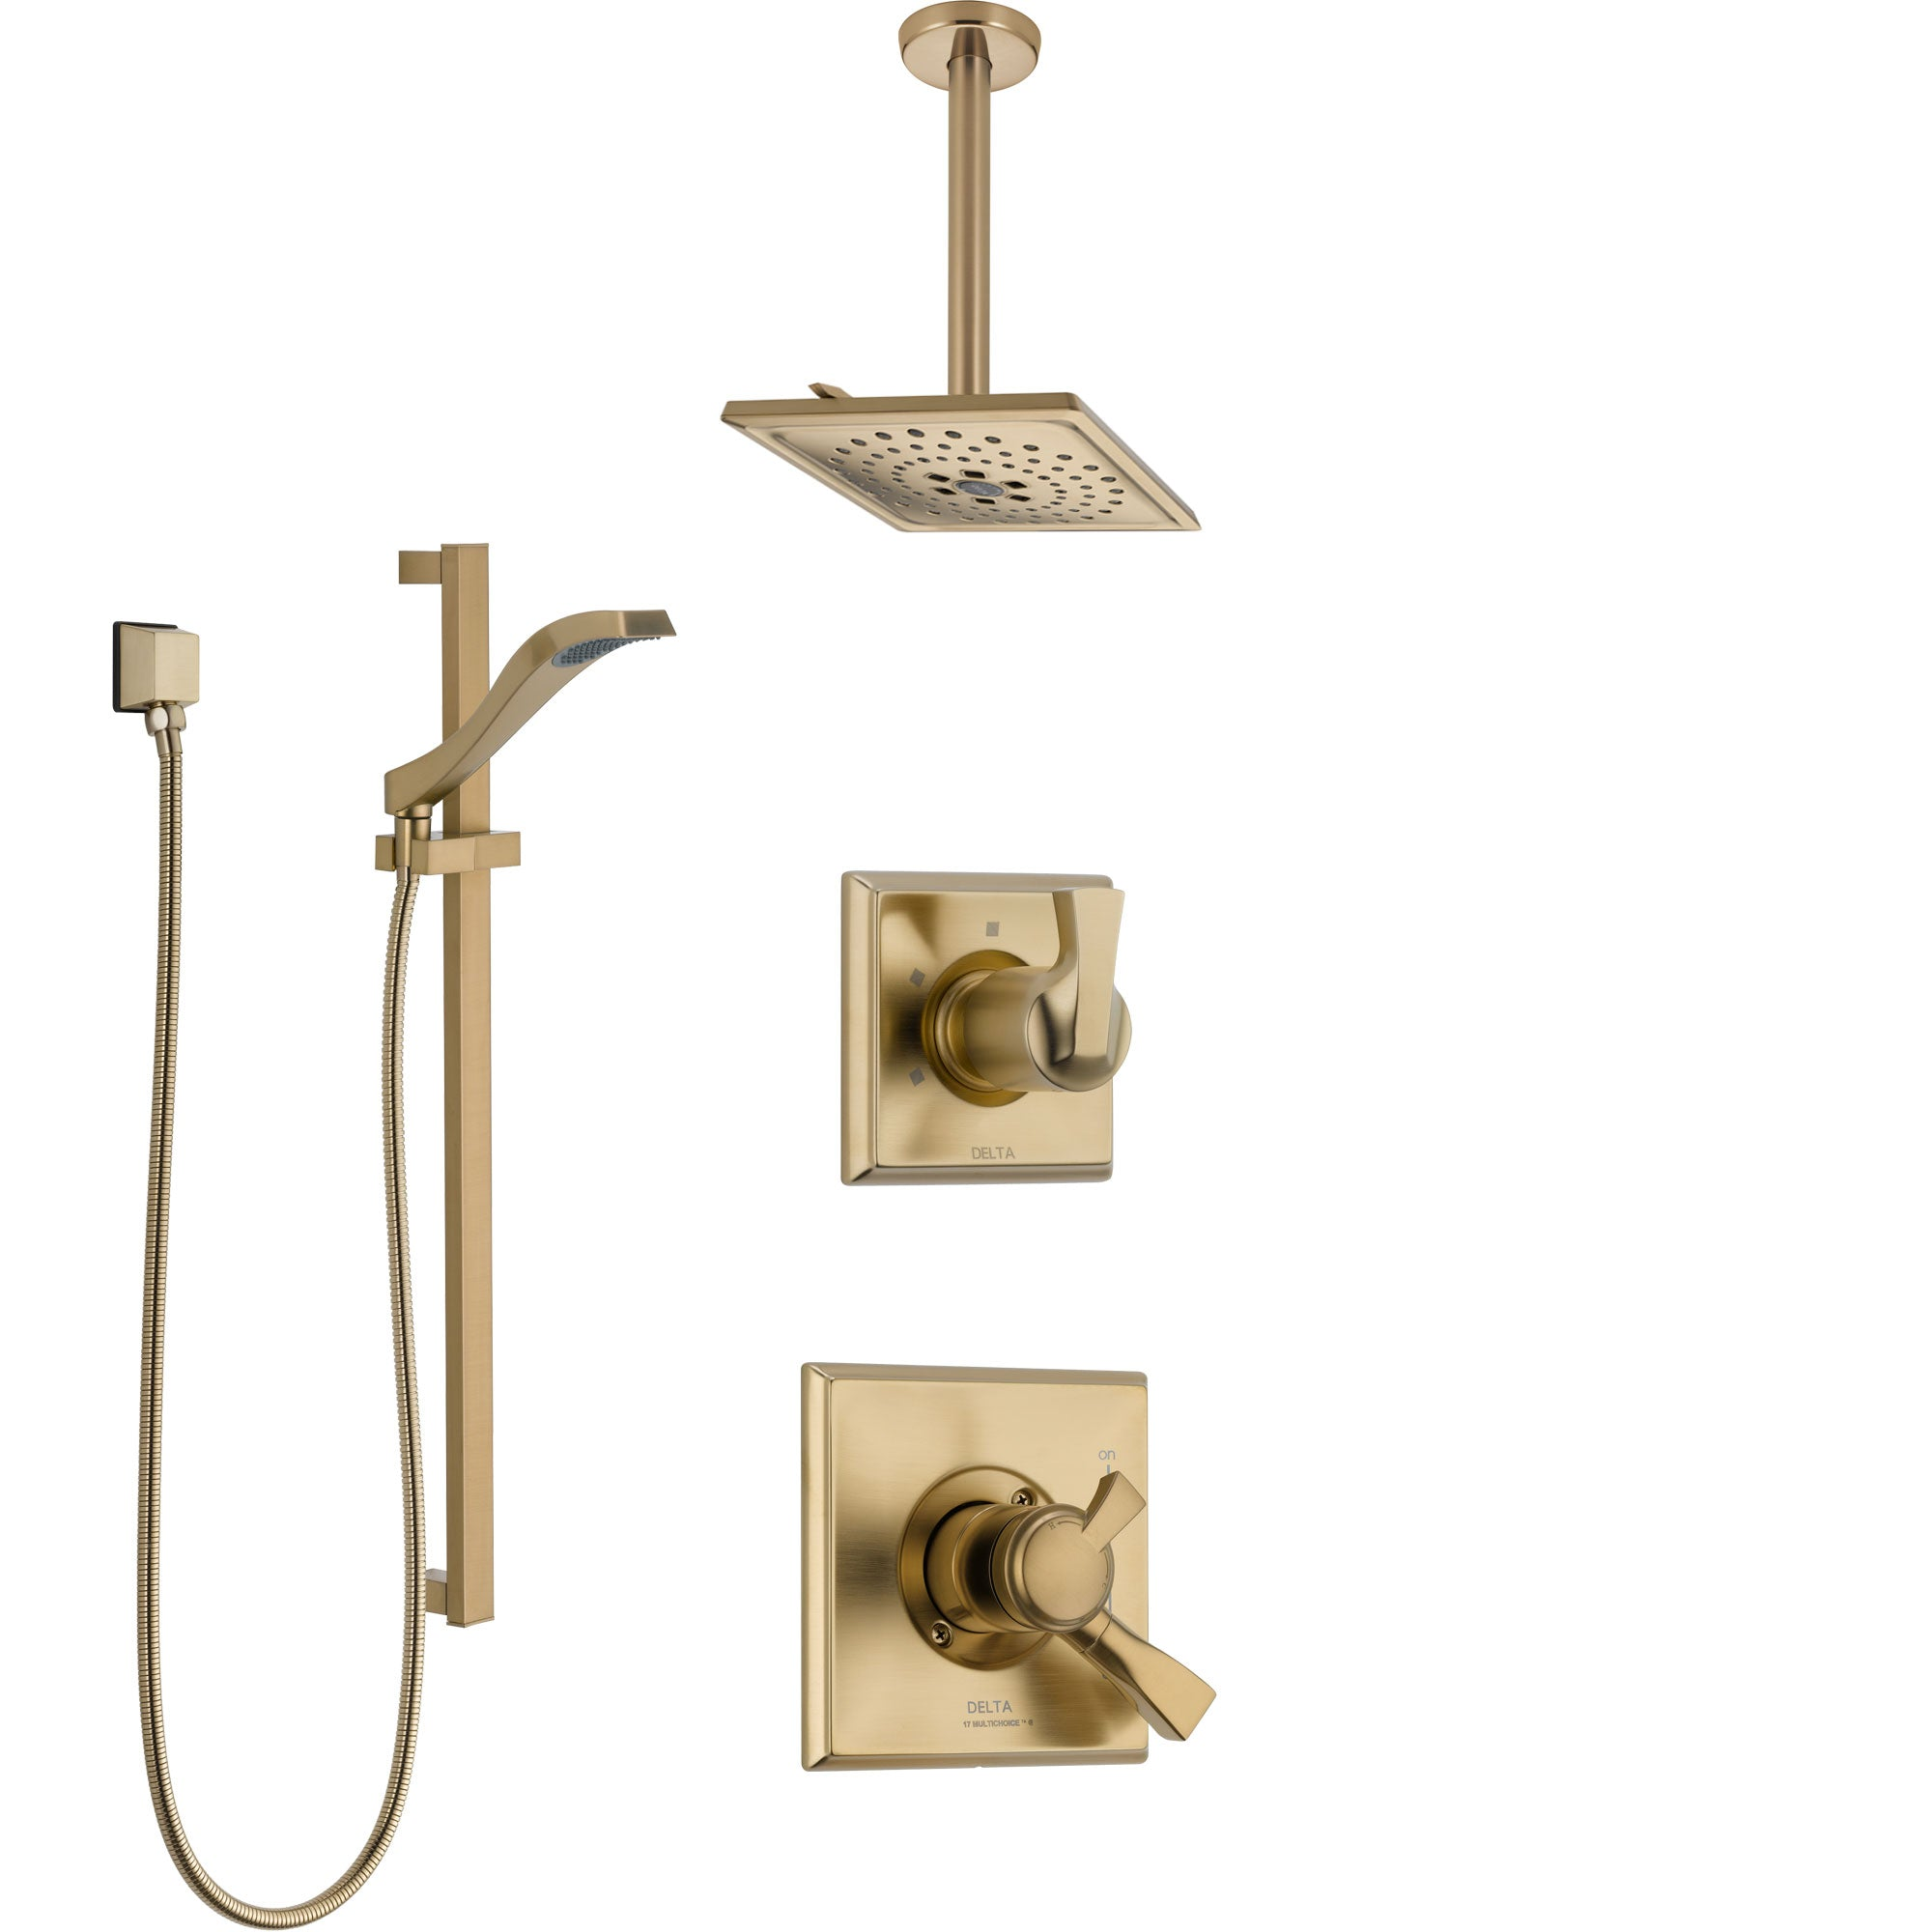 Delta Dryden Champagne Bronze Shower System with Dual Control Handle, Diverter, Ceiling Mount Showerhead, and Hand Shower with Slidebar SS1751CZ3